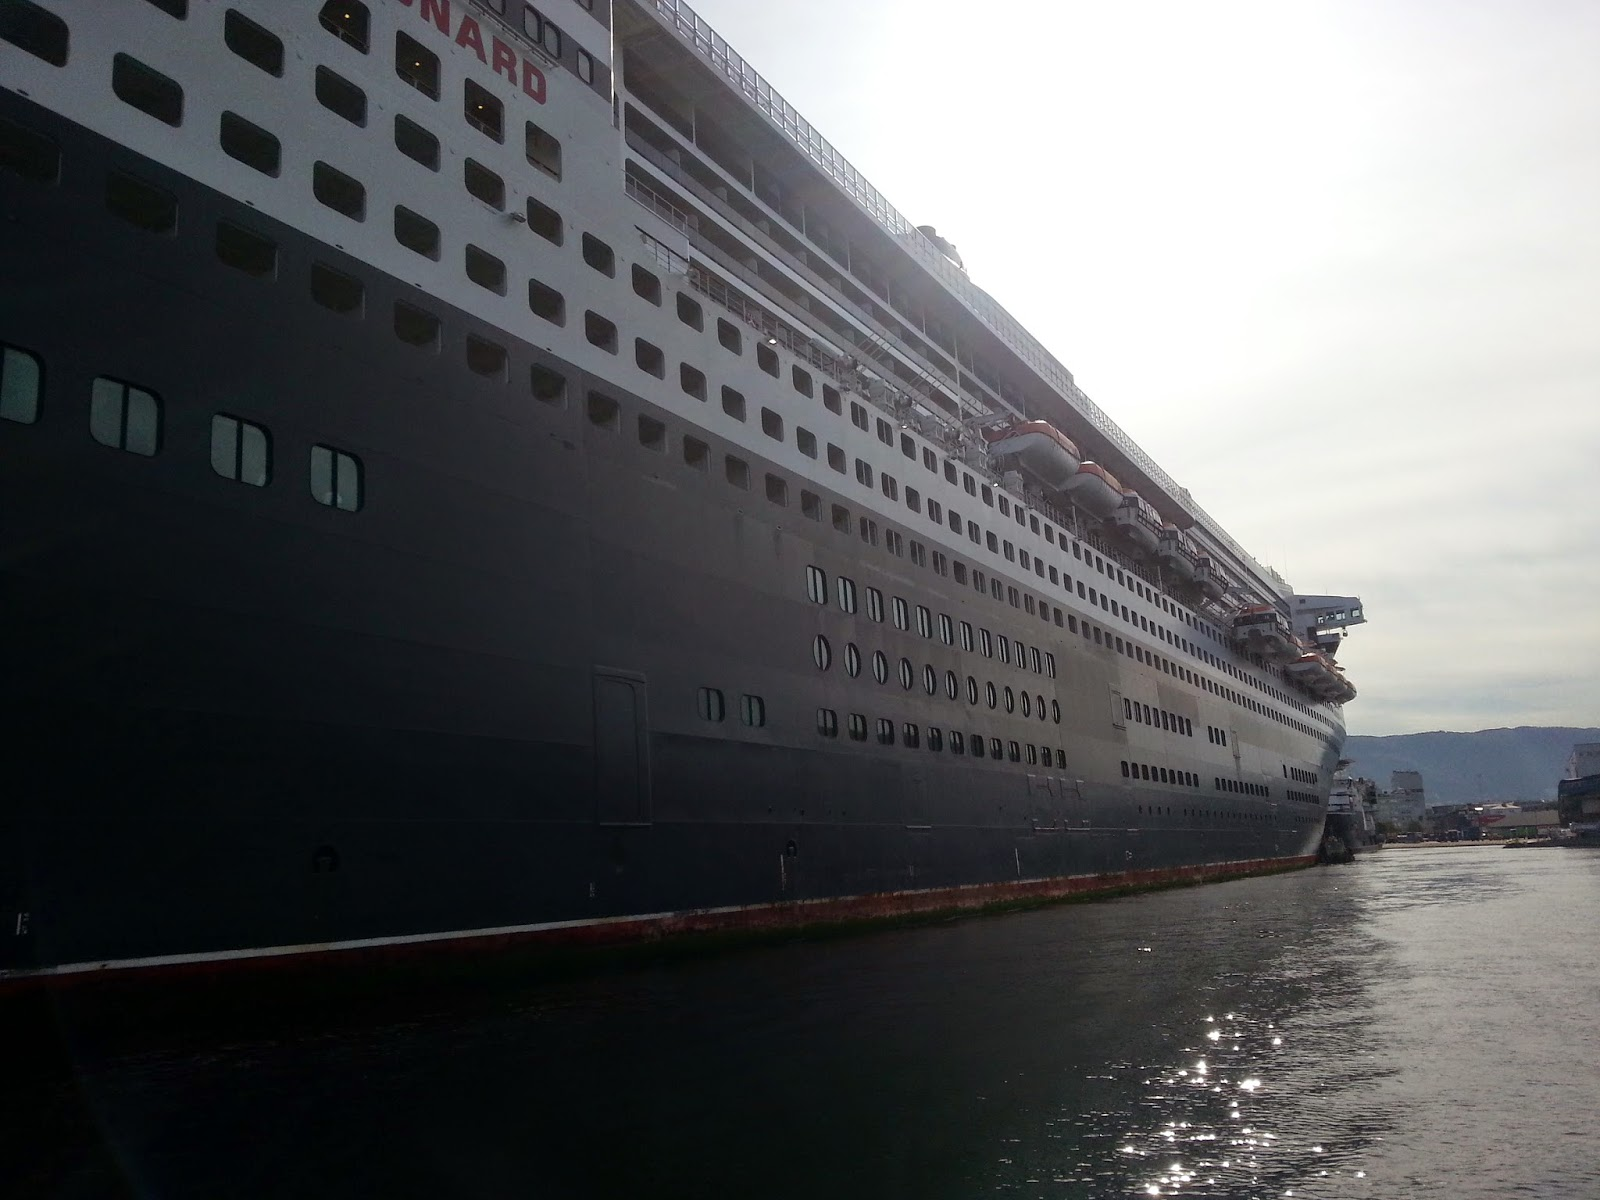 Queen Mary 2 in Bergen